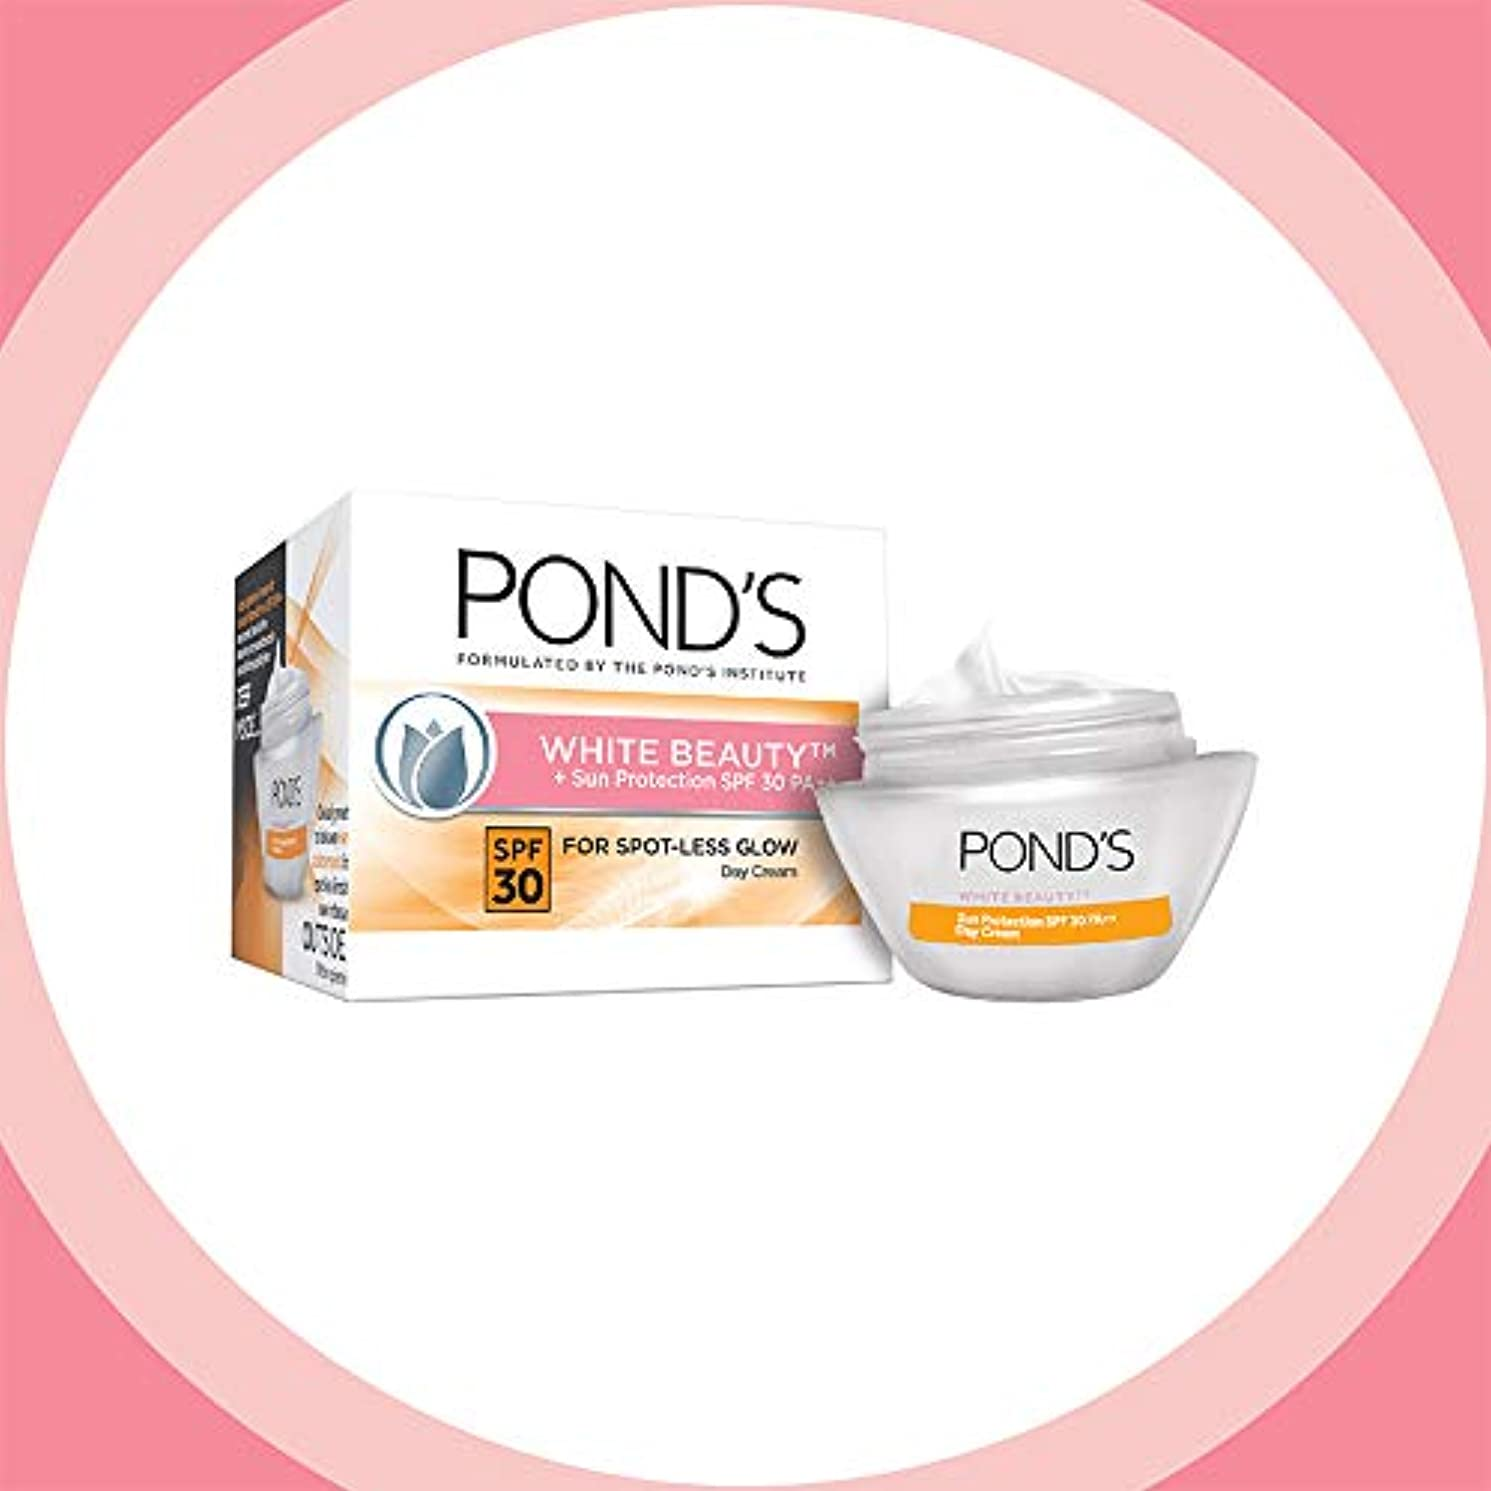 POND'S White Beauty Sun Protection SPF 30 Day Cream, 35 gms (並行インポート) India